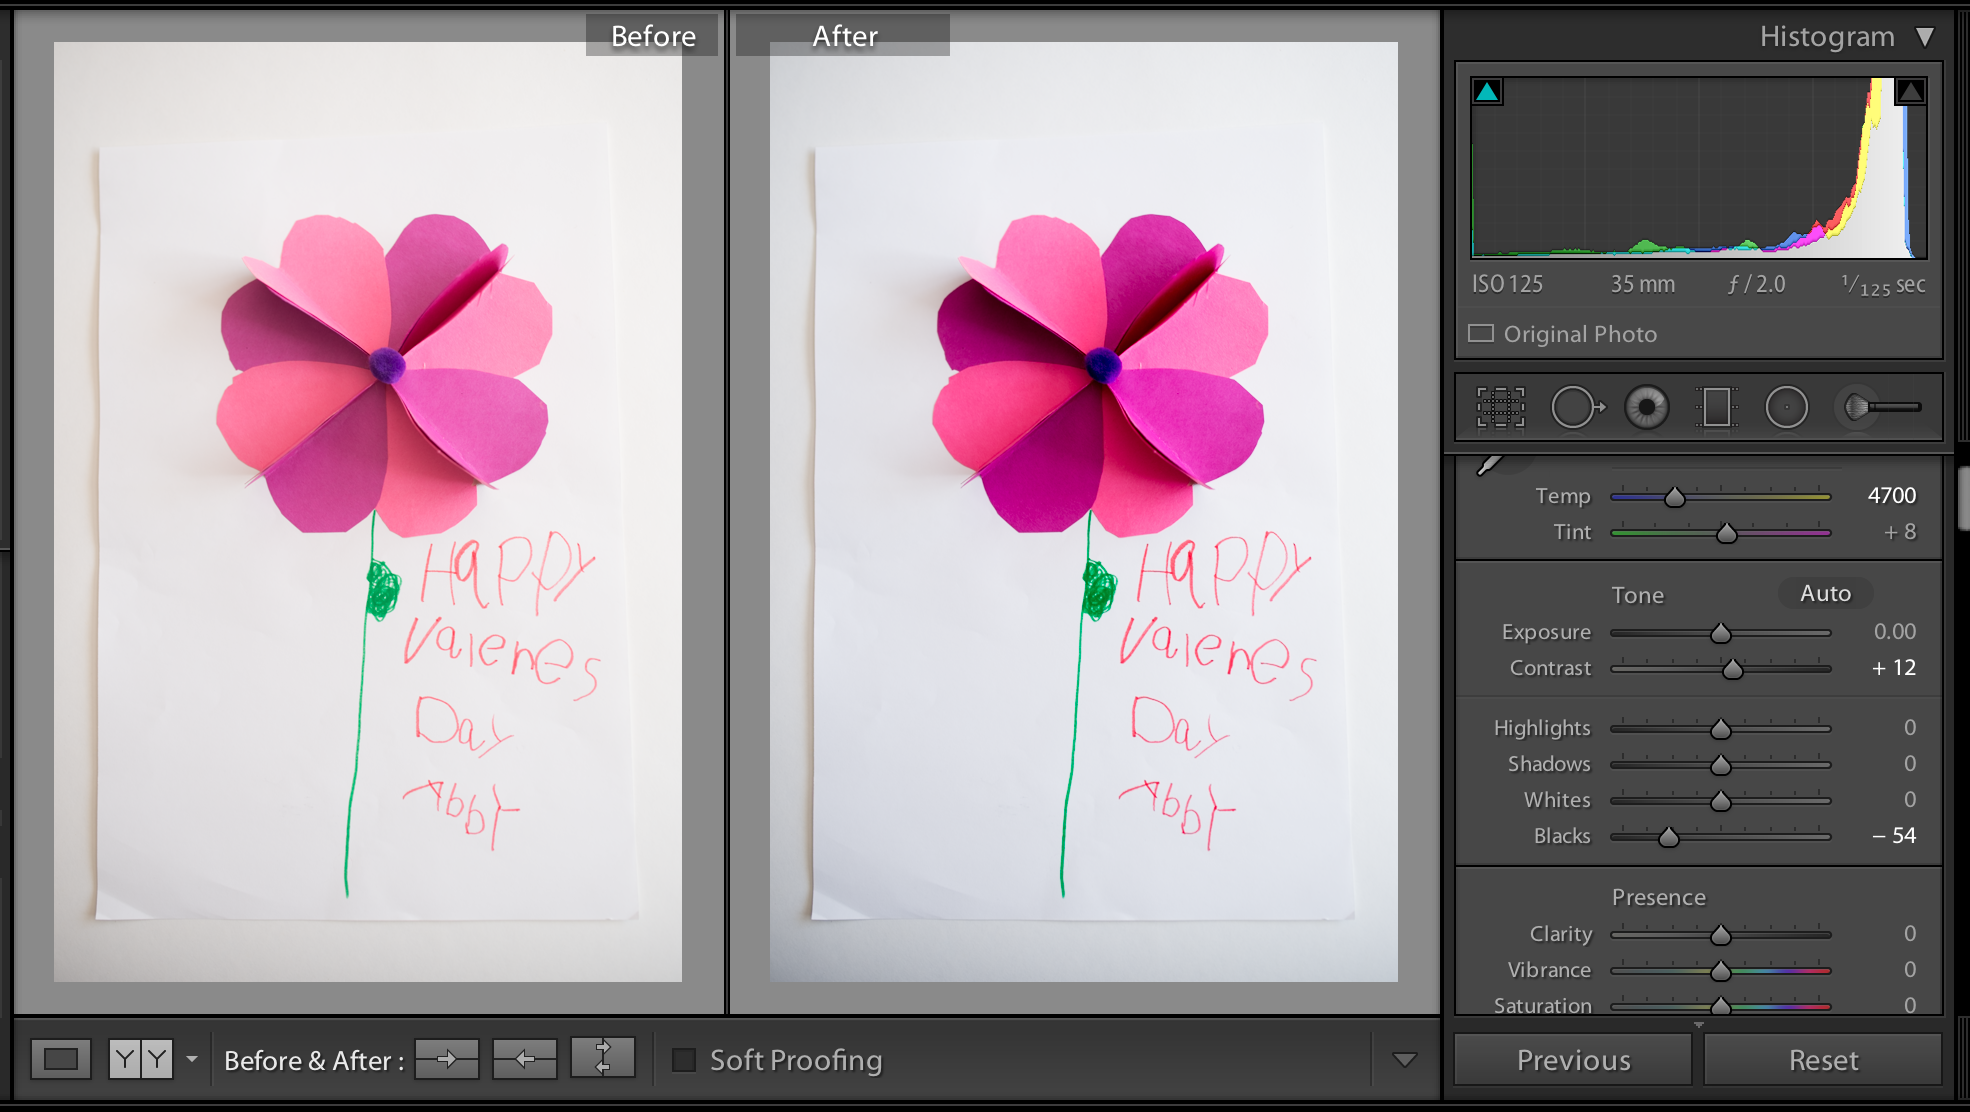 adding contrast in Lightroom to photos by Melissa Stottmann